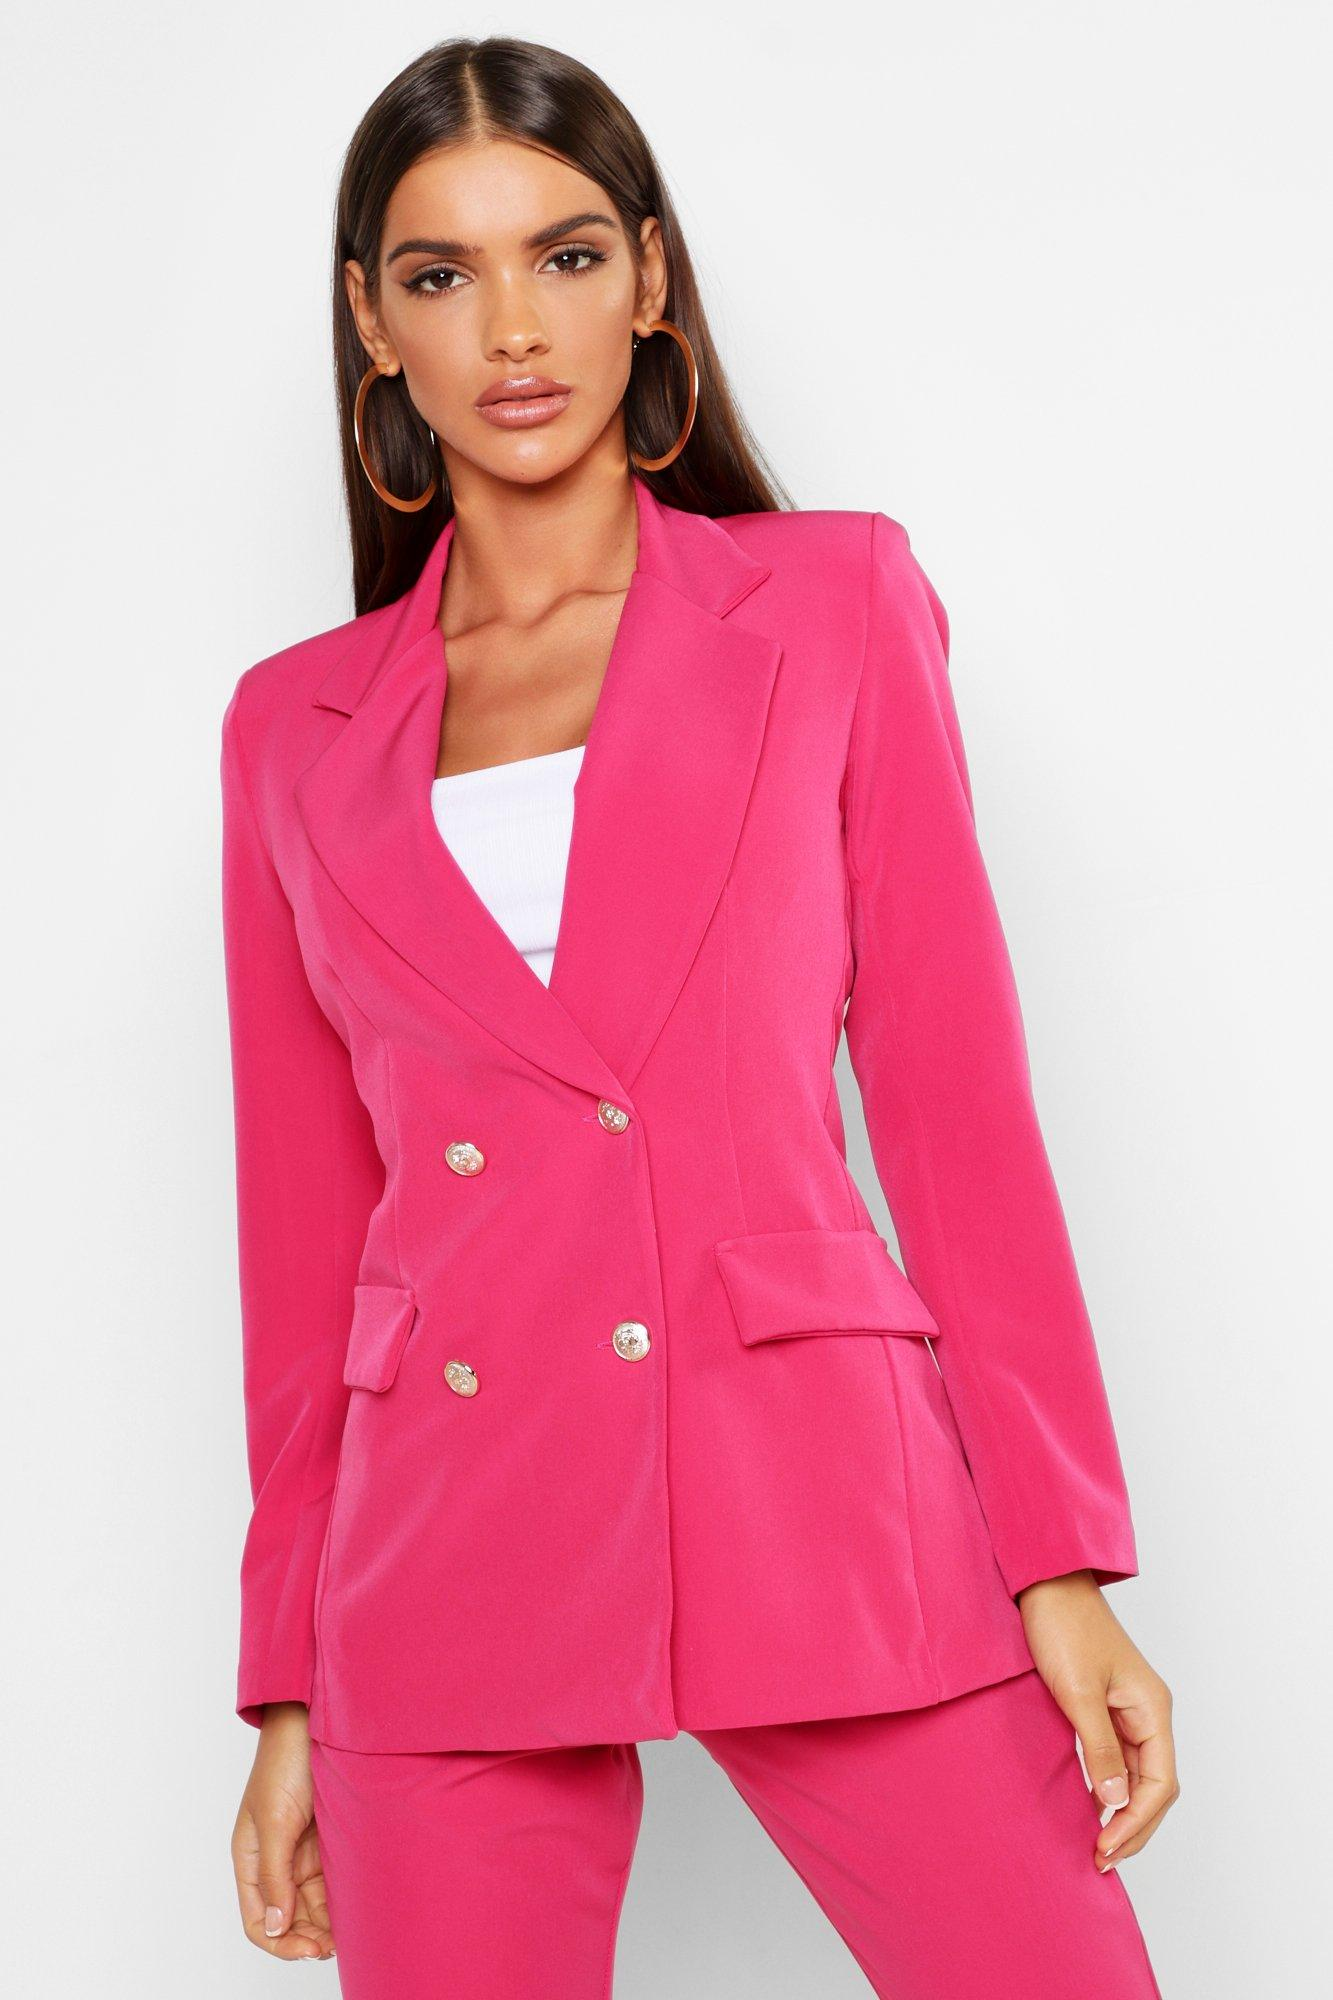 boohoo Womens Double Breasted Boxy Military Blazer - Pink - 14, Pink